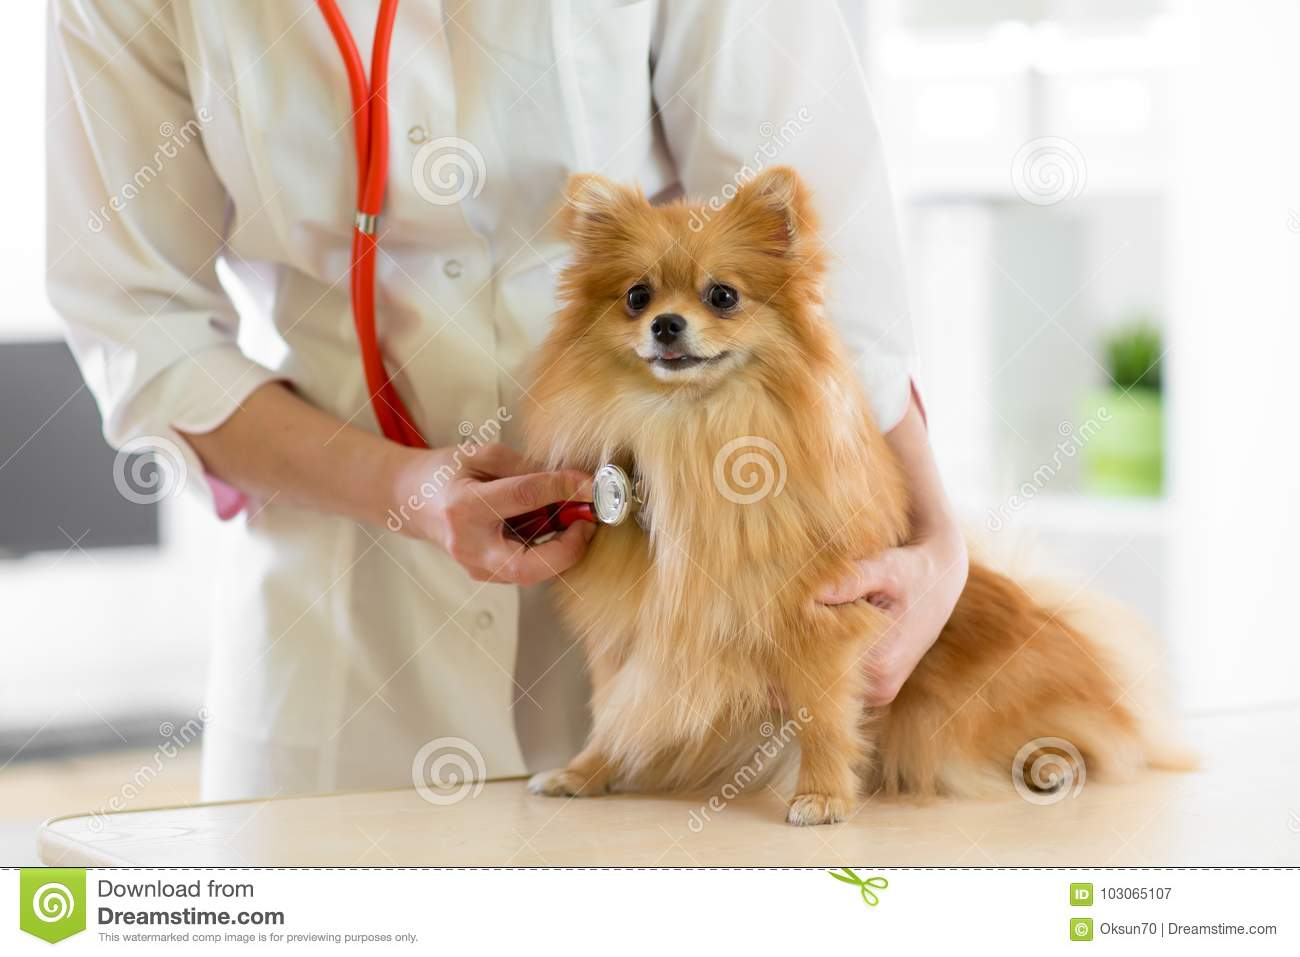 Veterinarian doctor using stethoscope during examination in veterinary clinic. Dog pomeranian Spitz in veterinary clinic